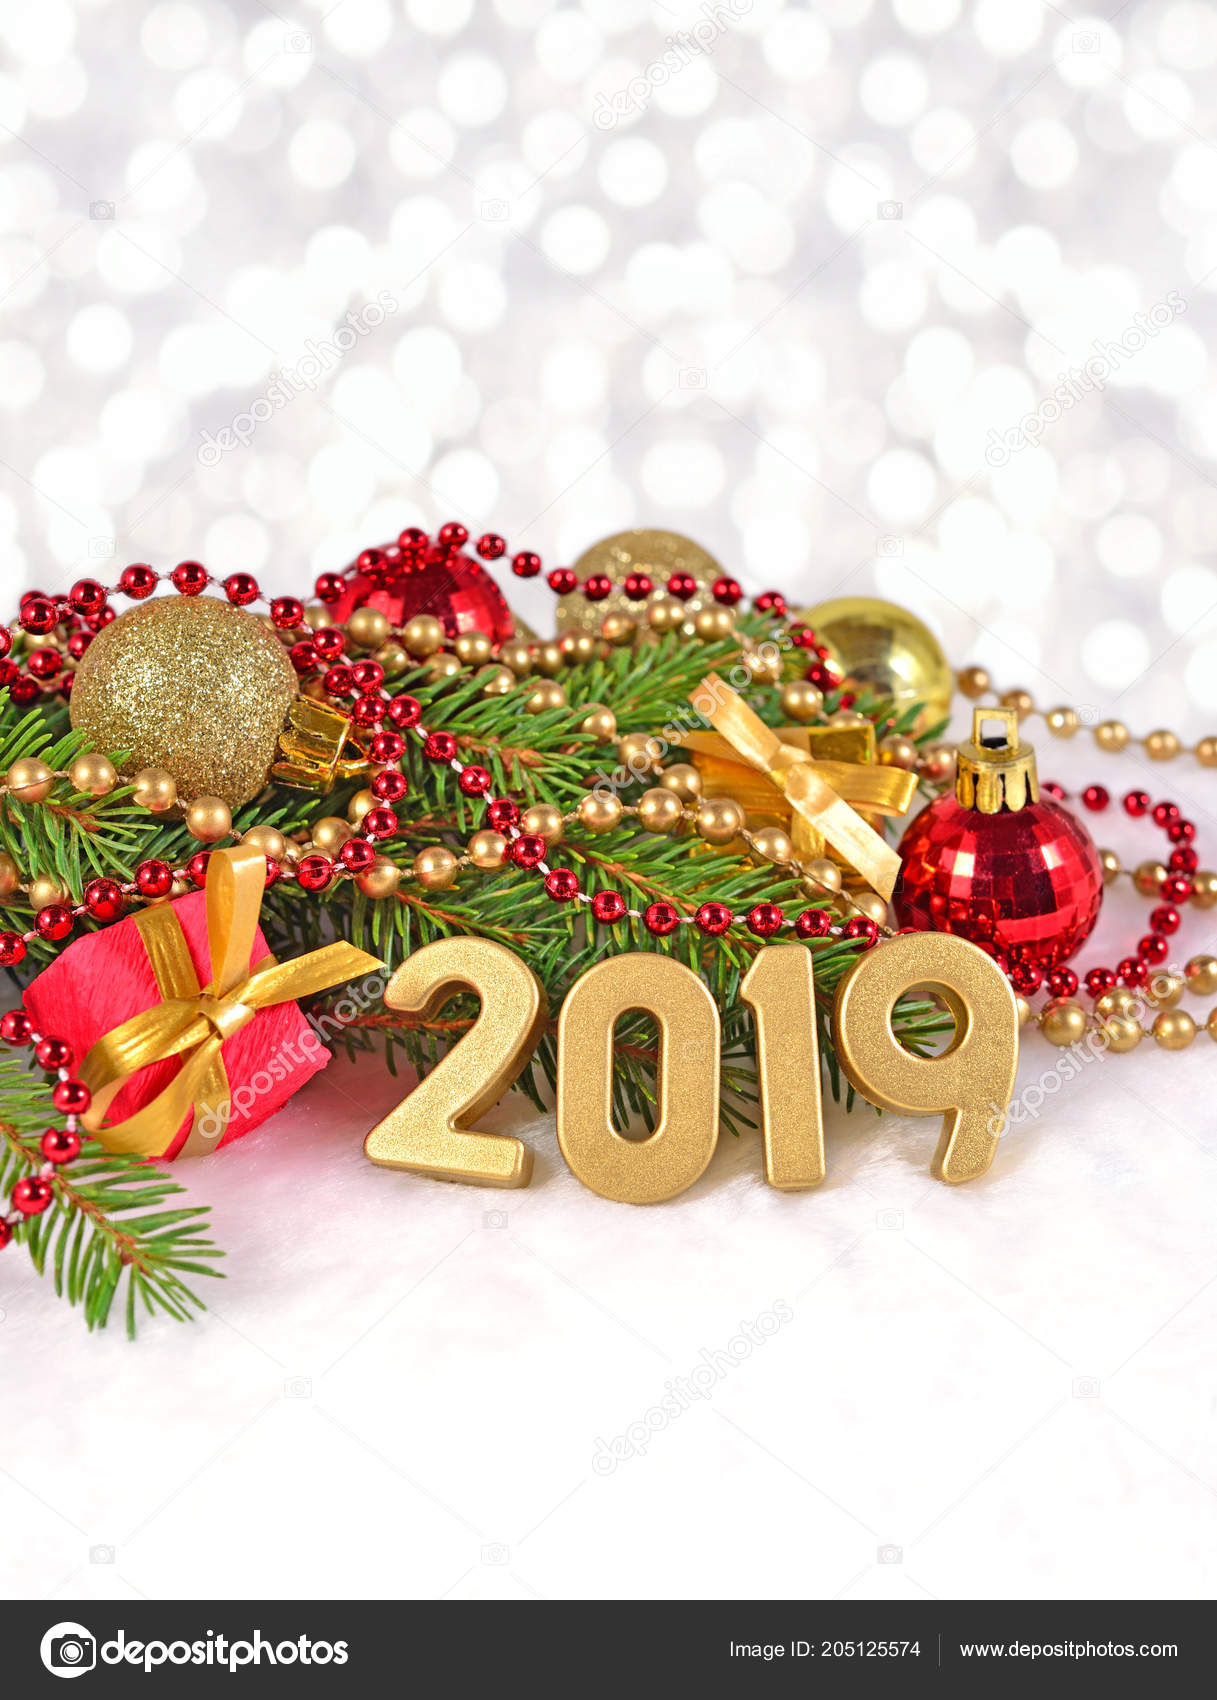 2019 Year Golden Figures Spruce Branch Christmas Decorations Bokeh